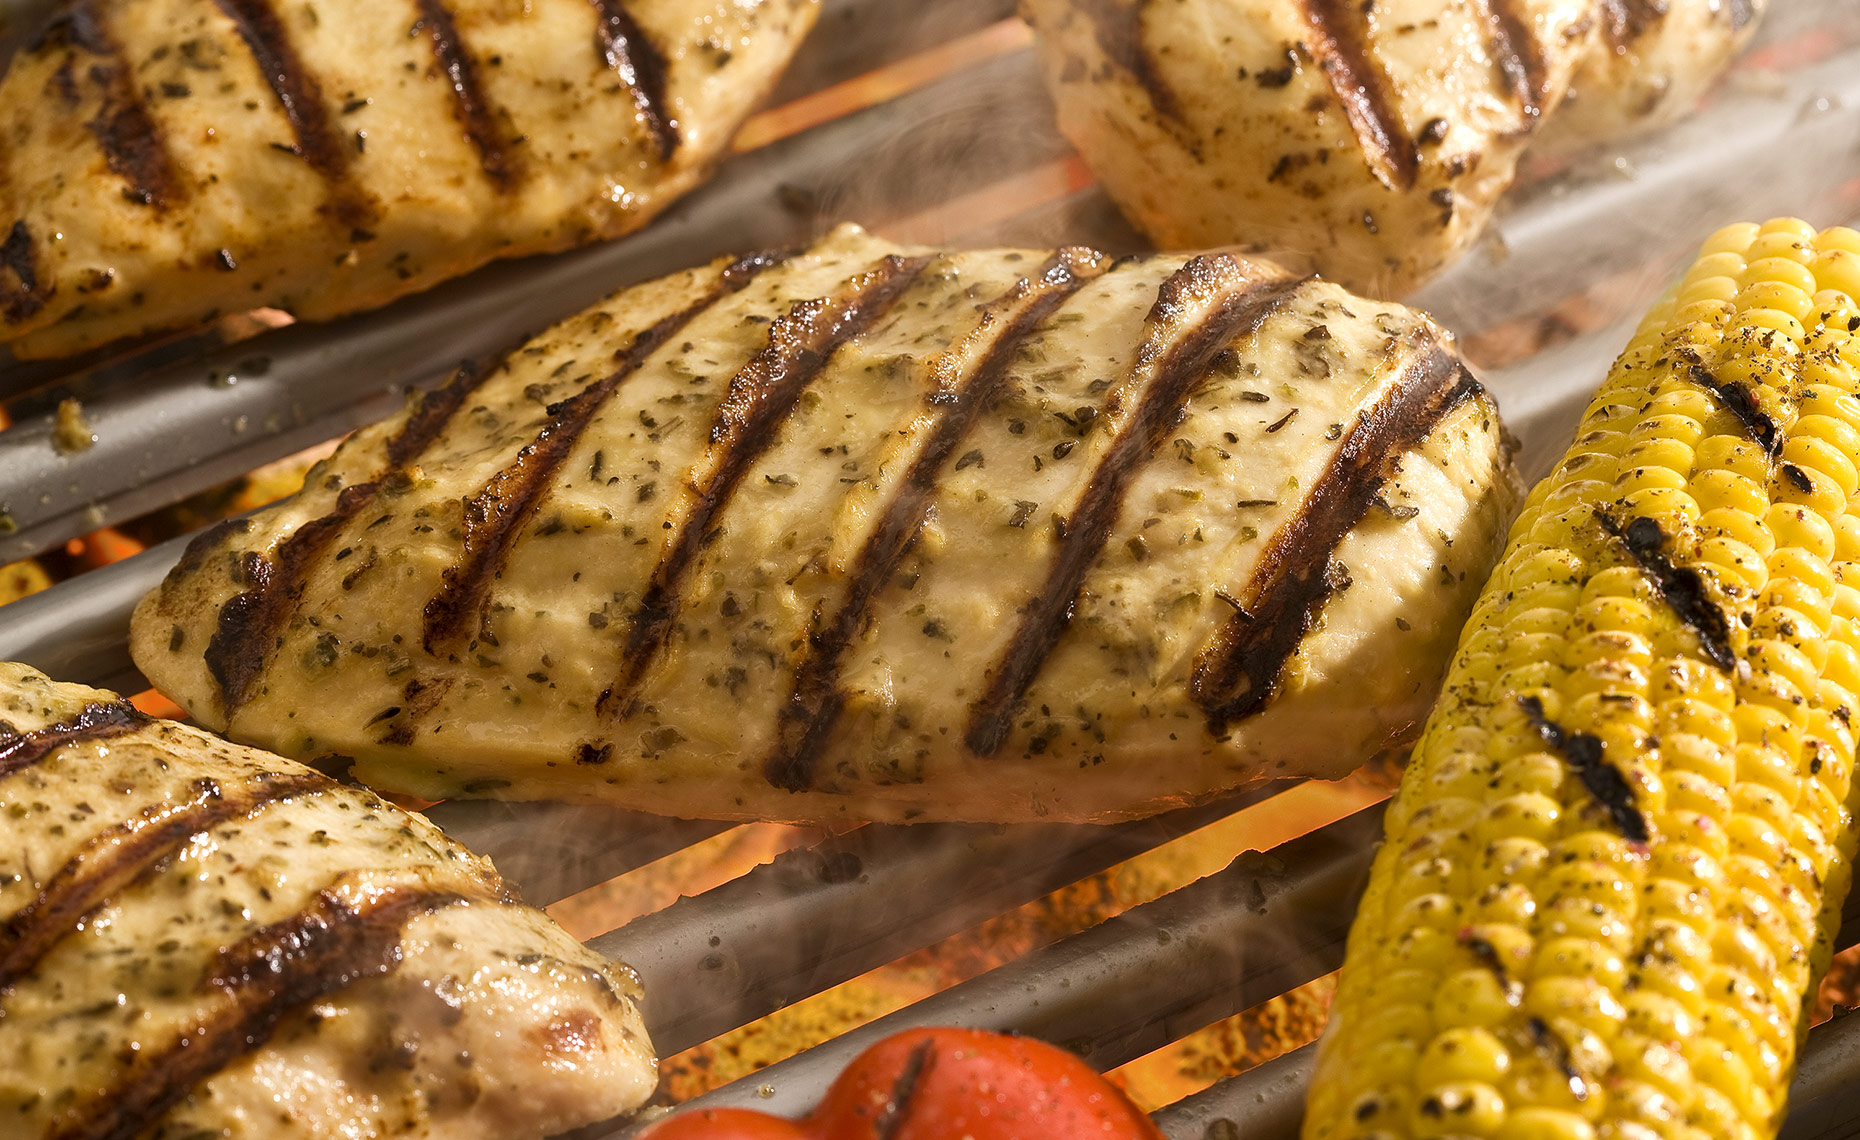 Food Photographer,  Chicken Photography, Poultry Photography | Pohuski Studios,  Grilled Italian Chicken